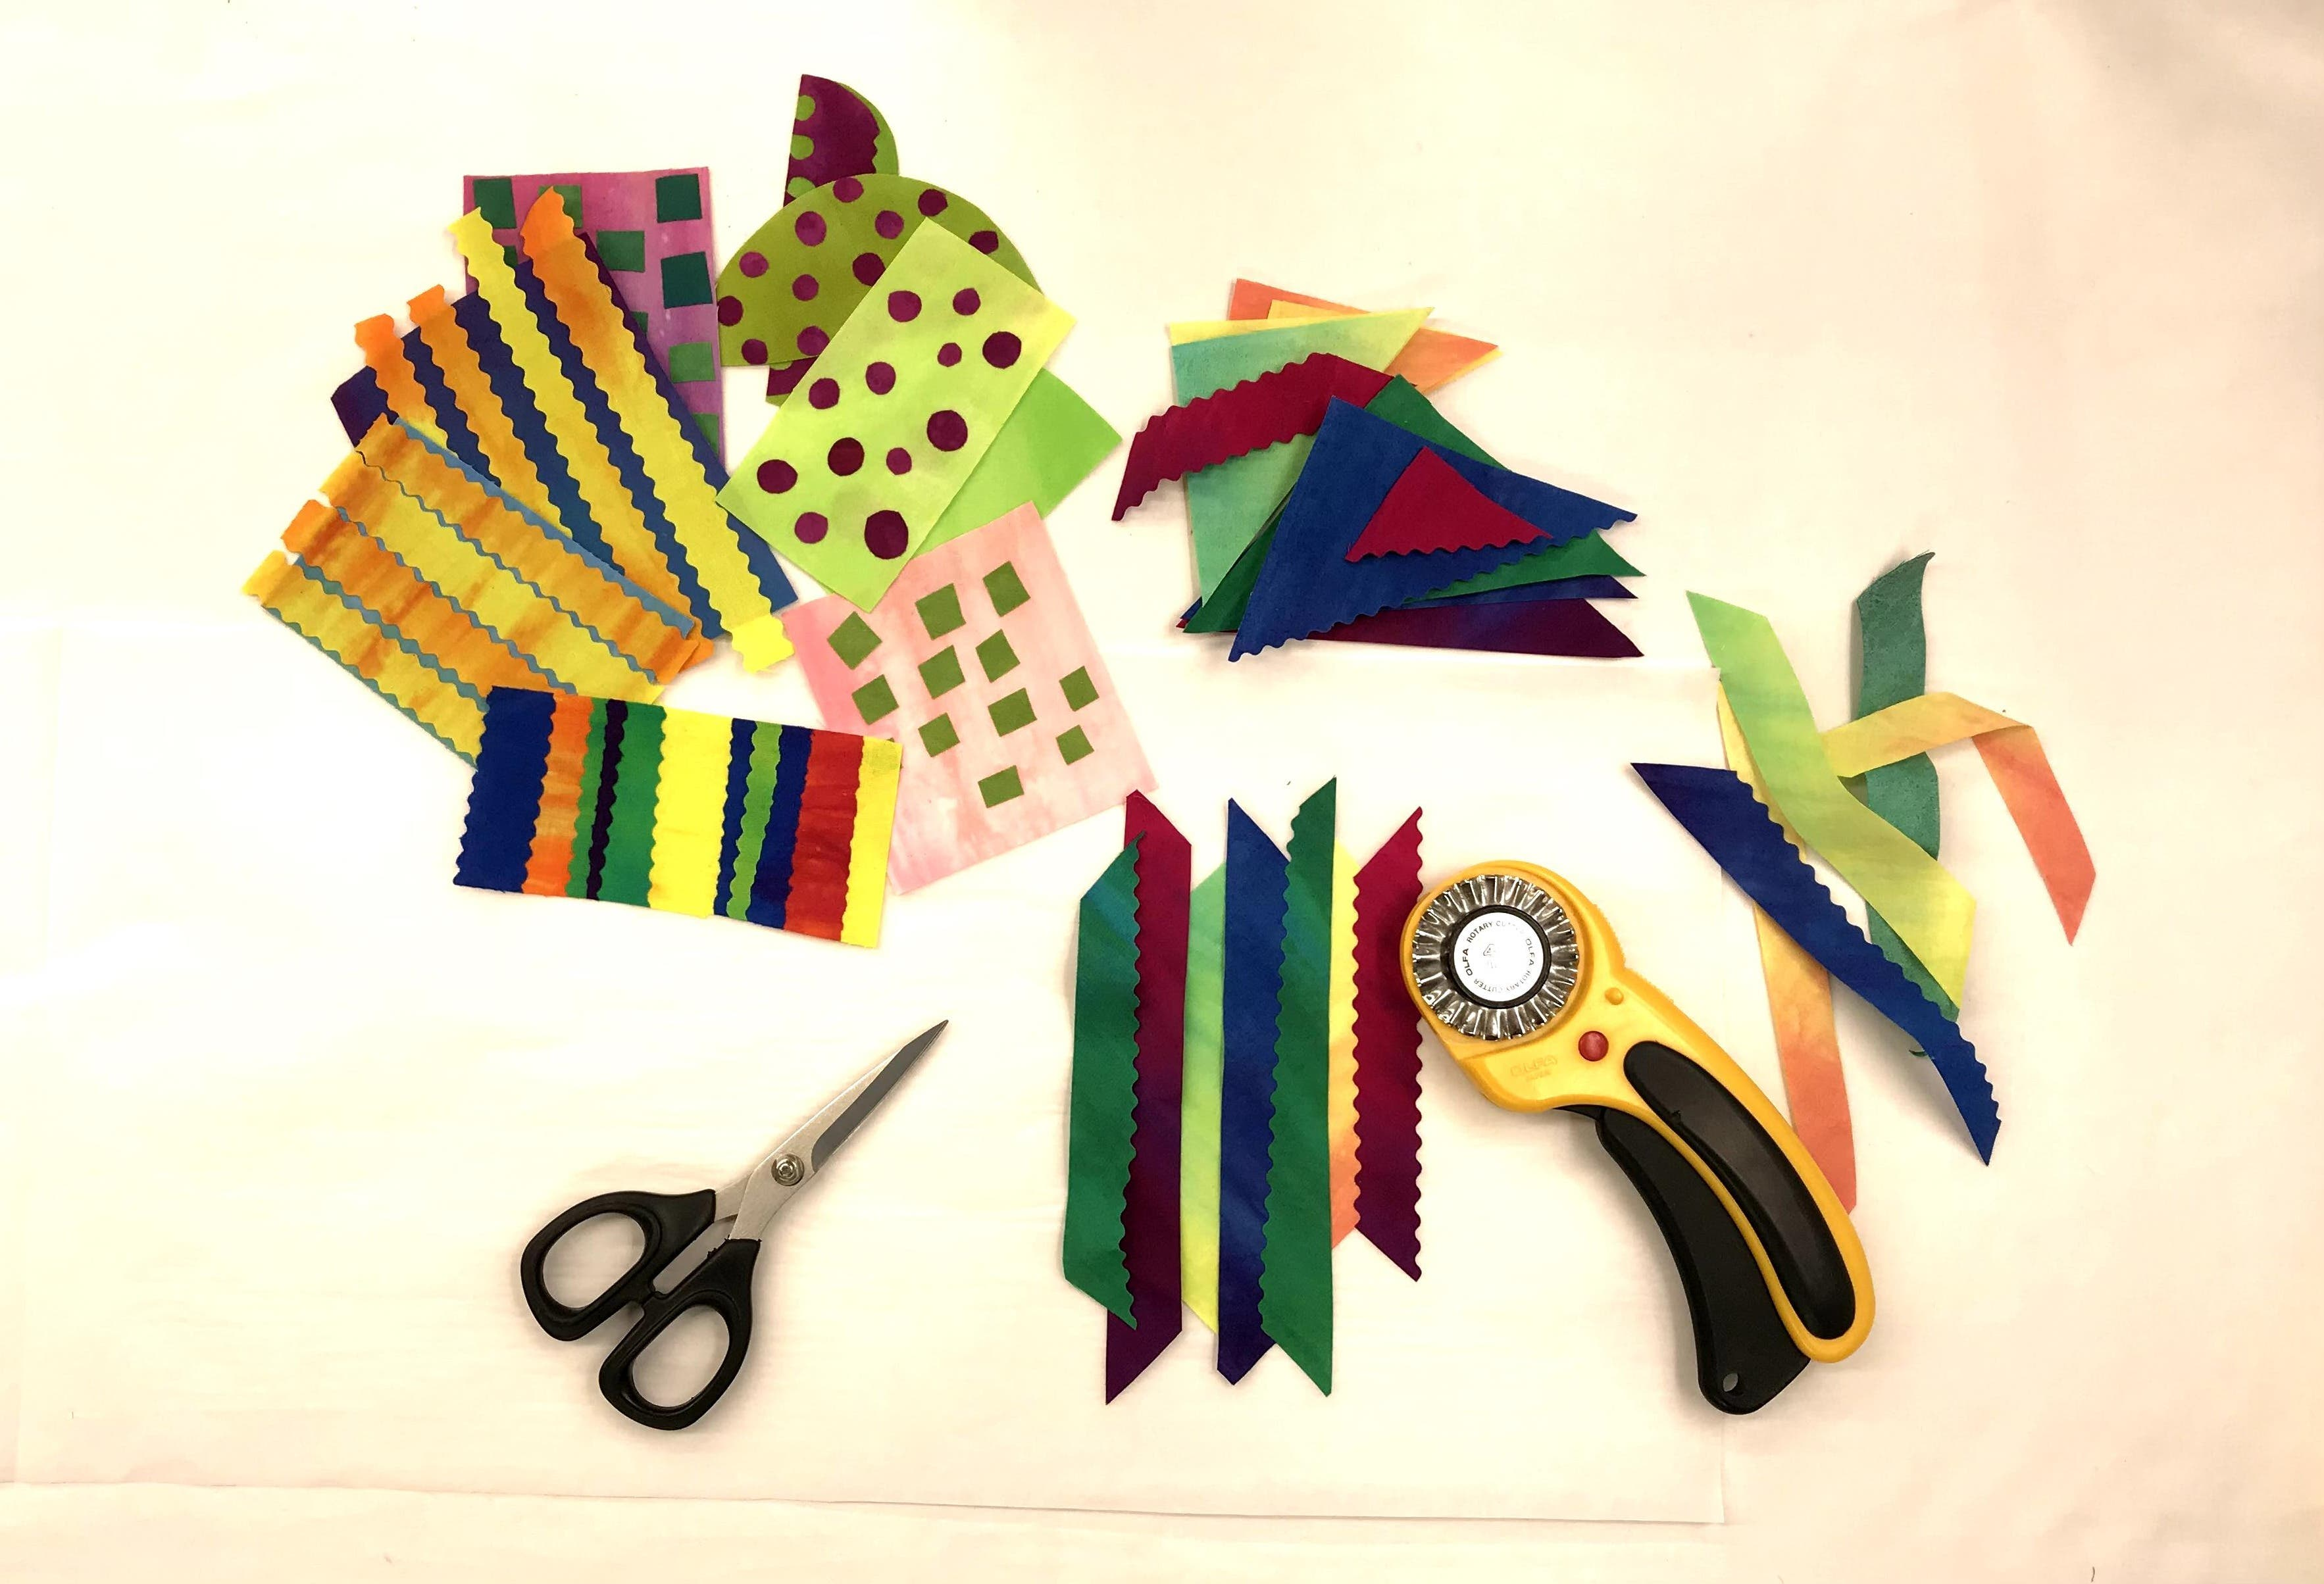 In the process of making improv collages with fused fabric that has been cut with a pinking blade